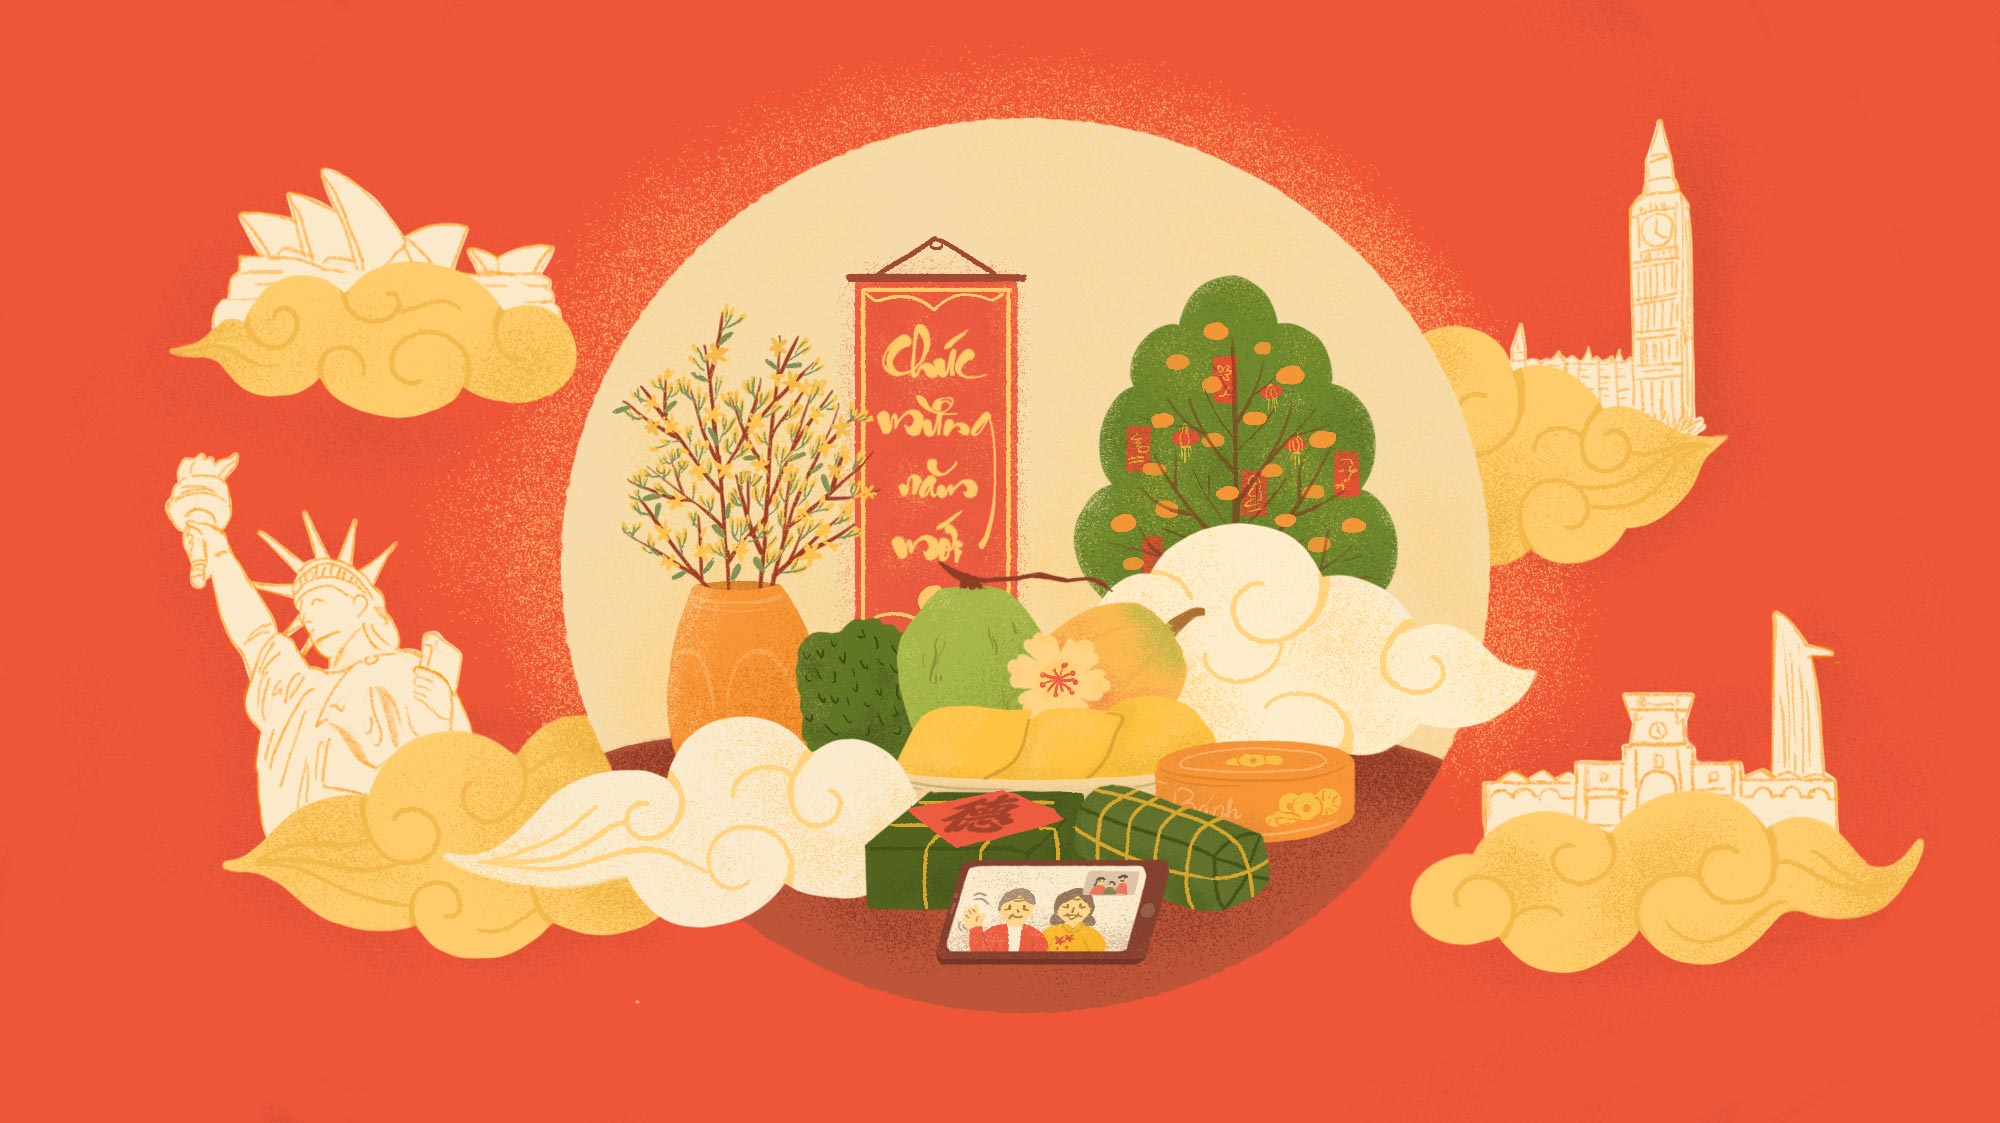 Tet a.k.a. Lunar New Year Through The Eyes Of First-Generation Vietnamese Americans